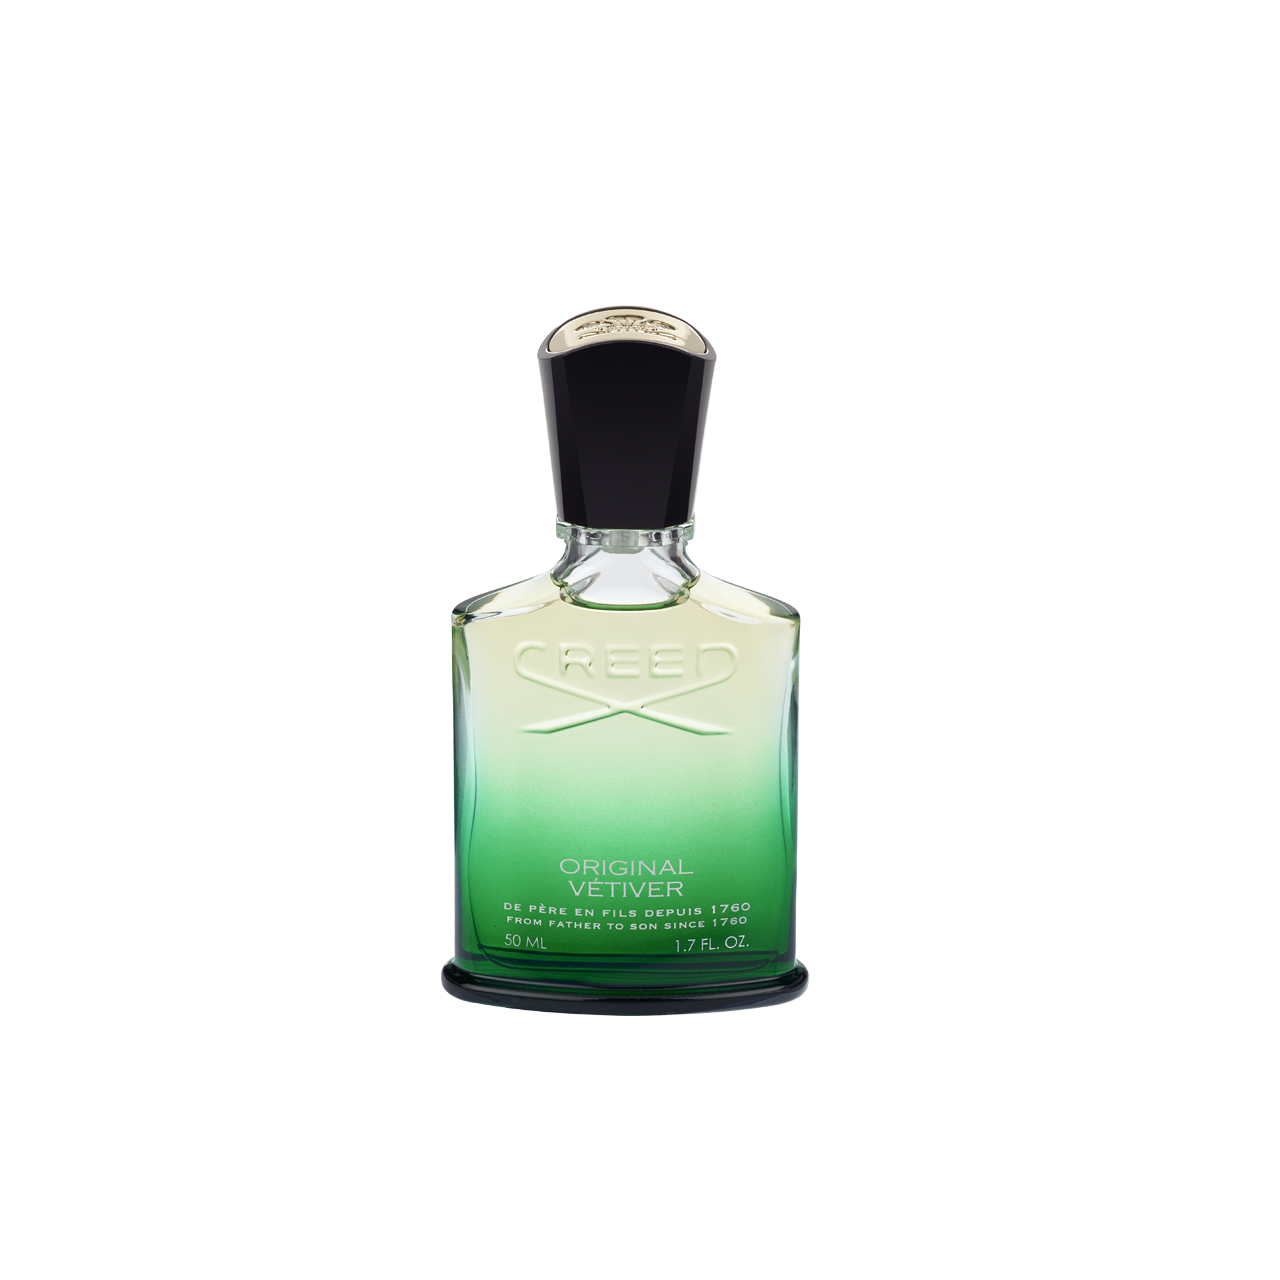 Original Vetiver - Millesime